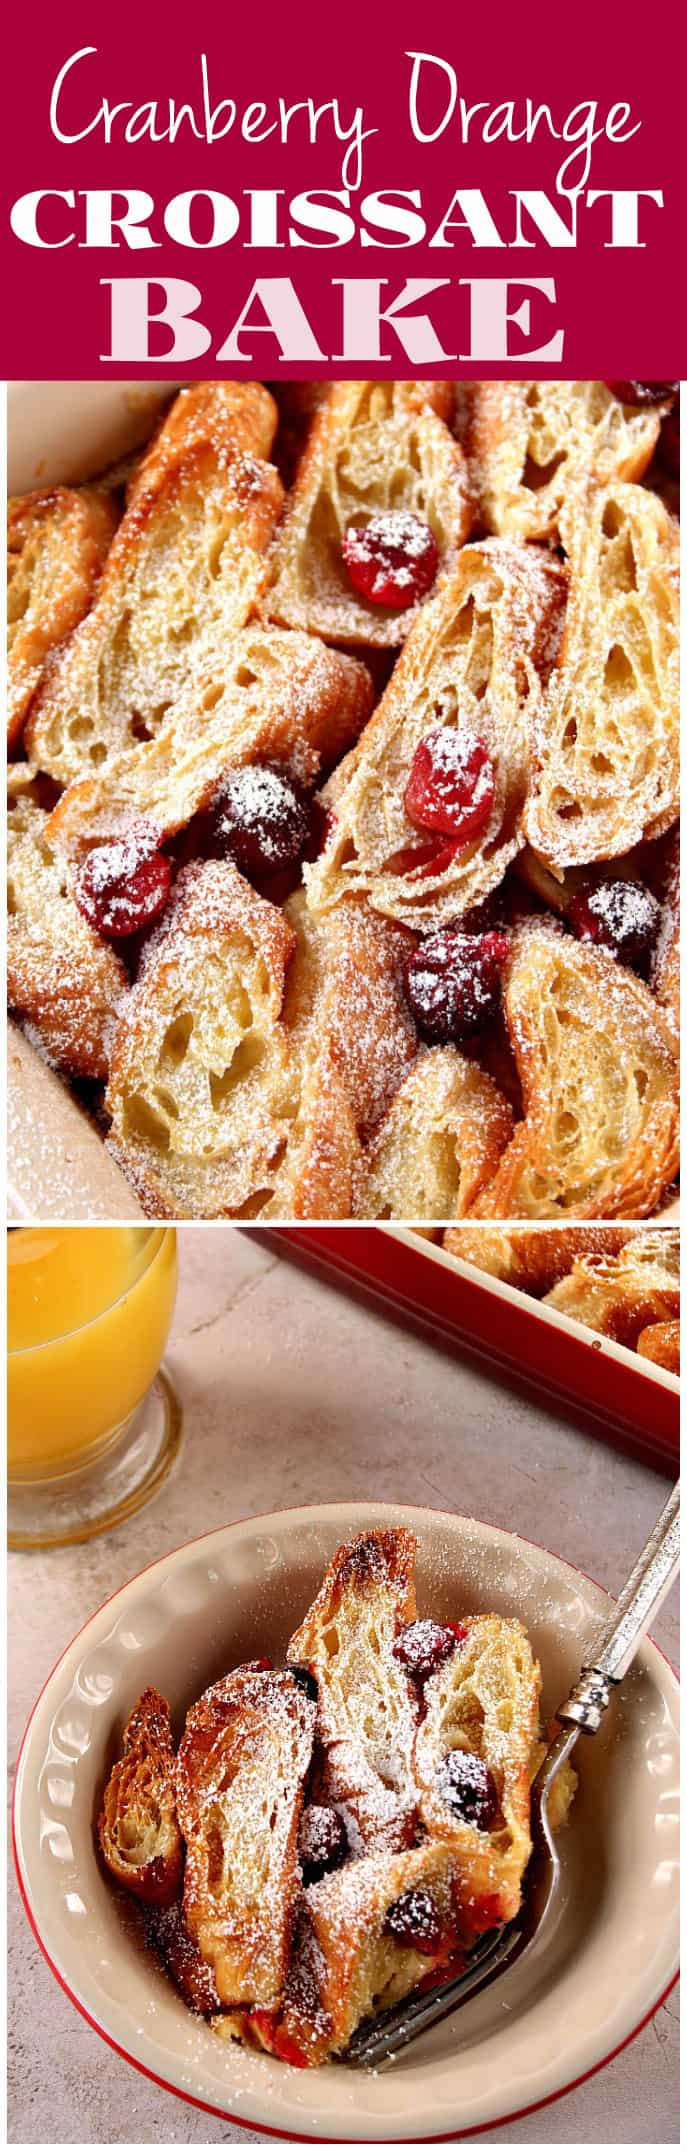 cranberry orange croissant bake recipe long1 Orange Cranberry Croissant Bake Recipe